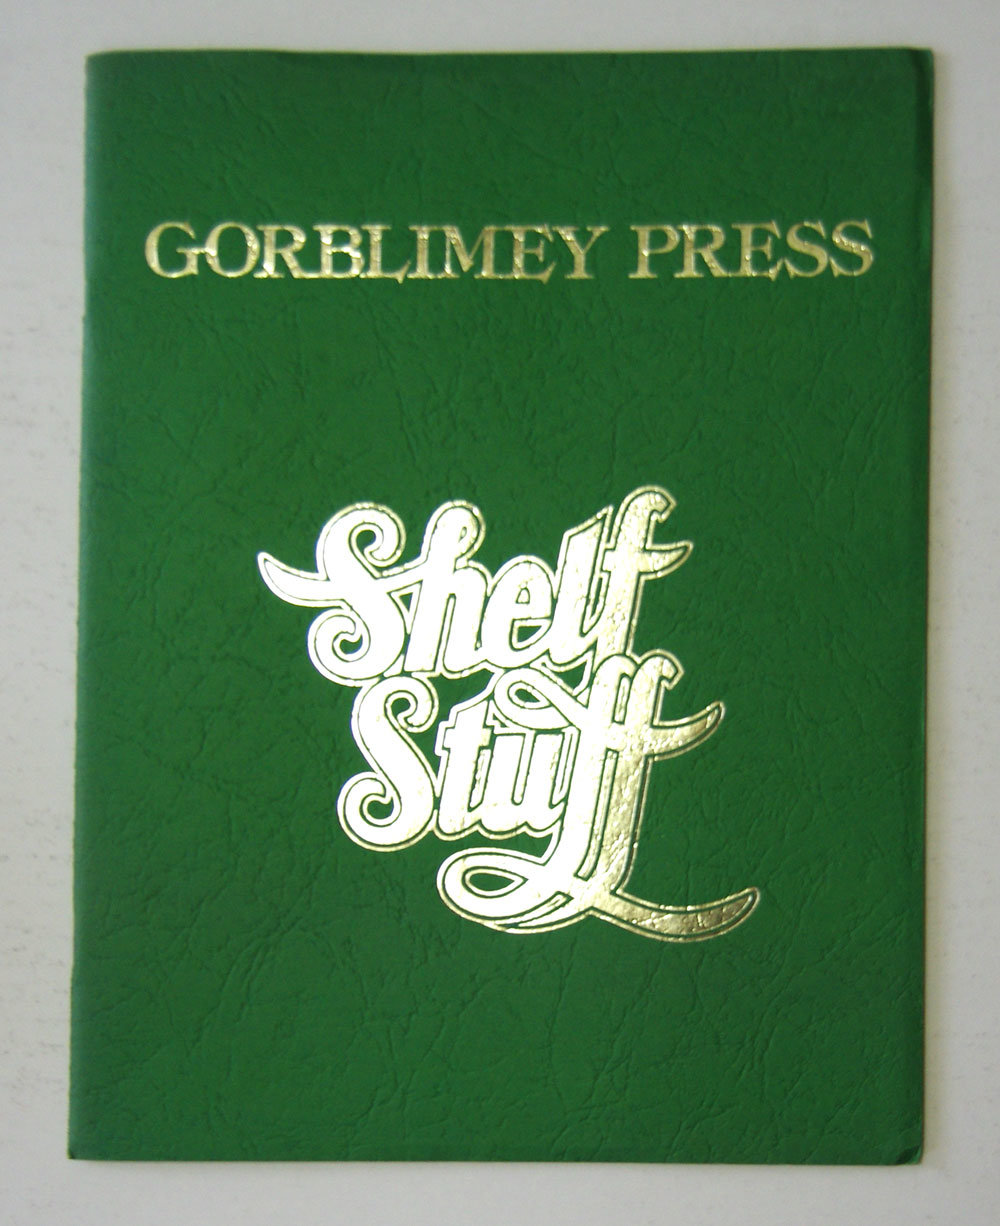 Barry Windsor Smith 1975 Gorblimey Press Shelf Stuff First Edition